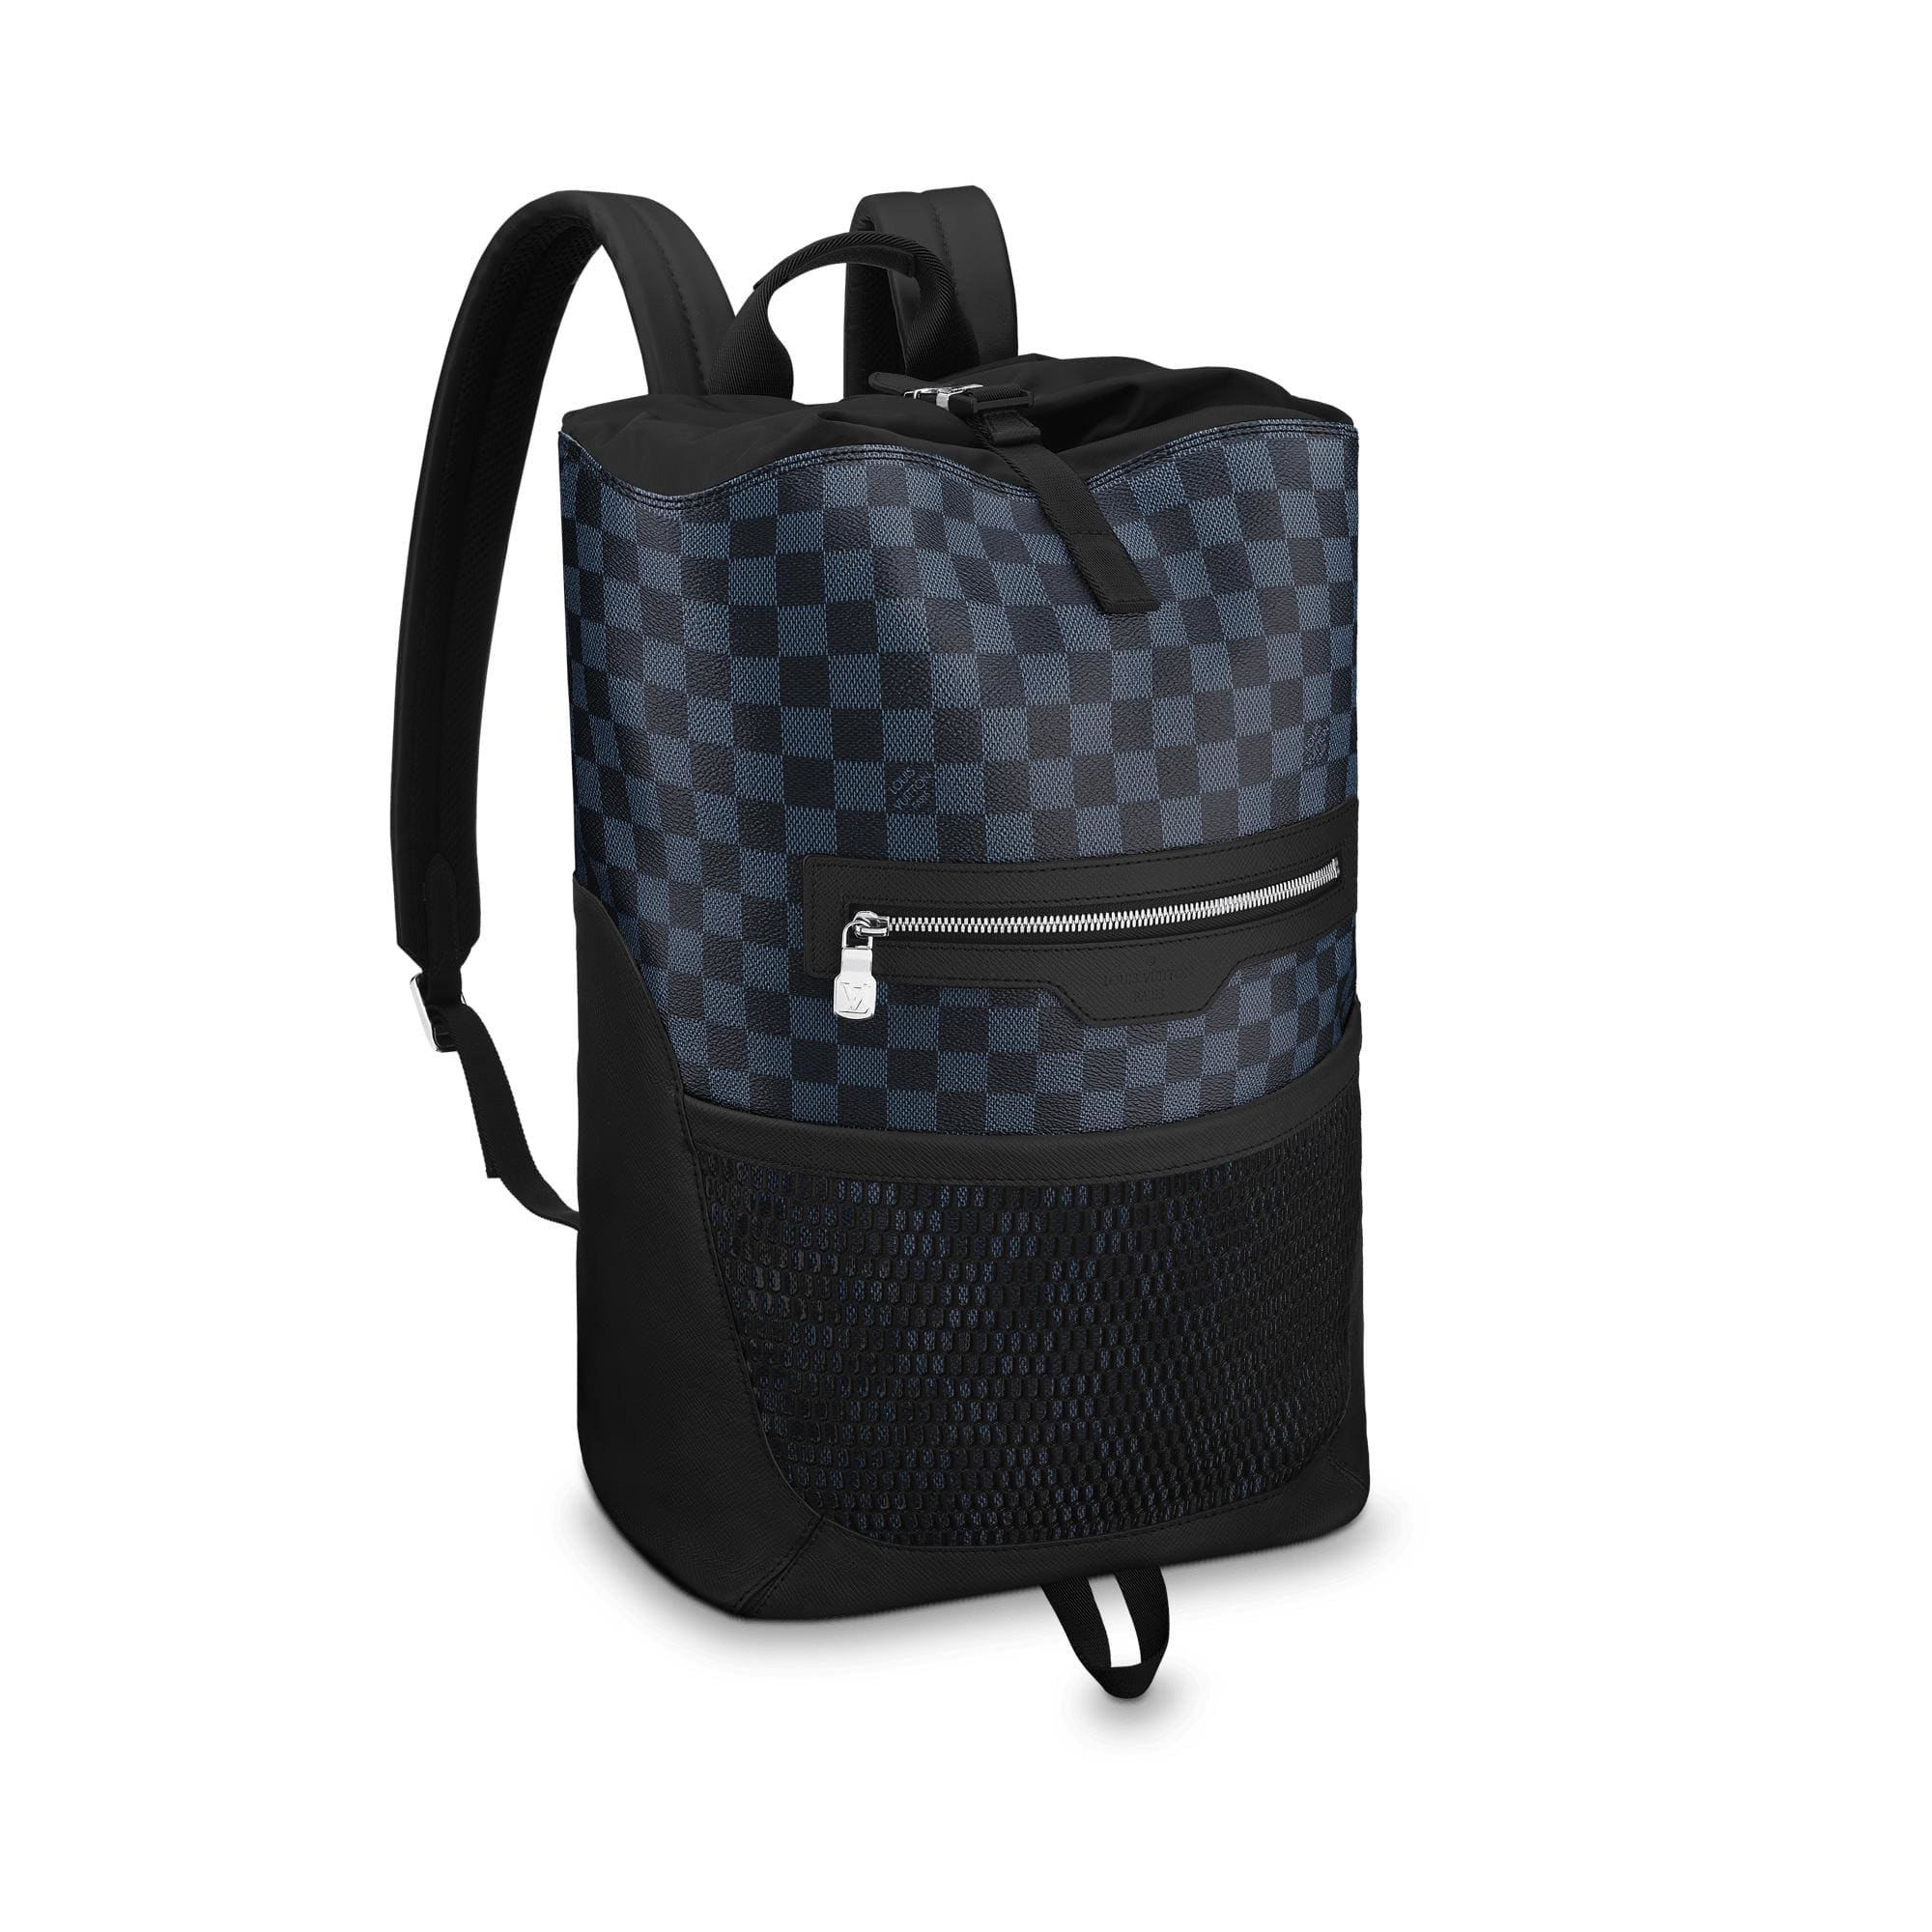 Louis Vuitton Backpack Matchpoint Damier Cobalt Black/Blue